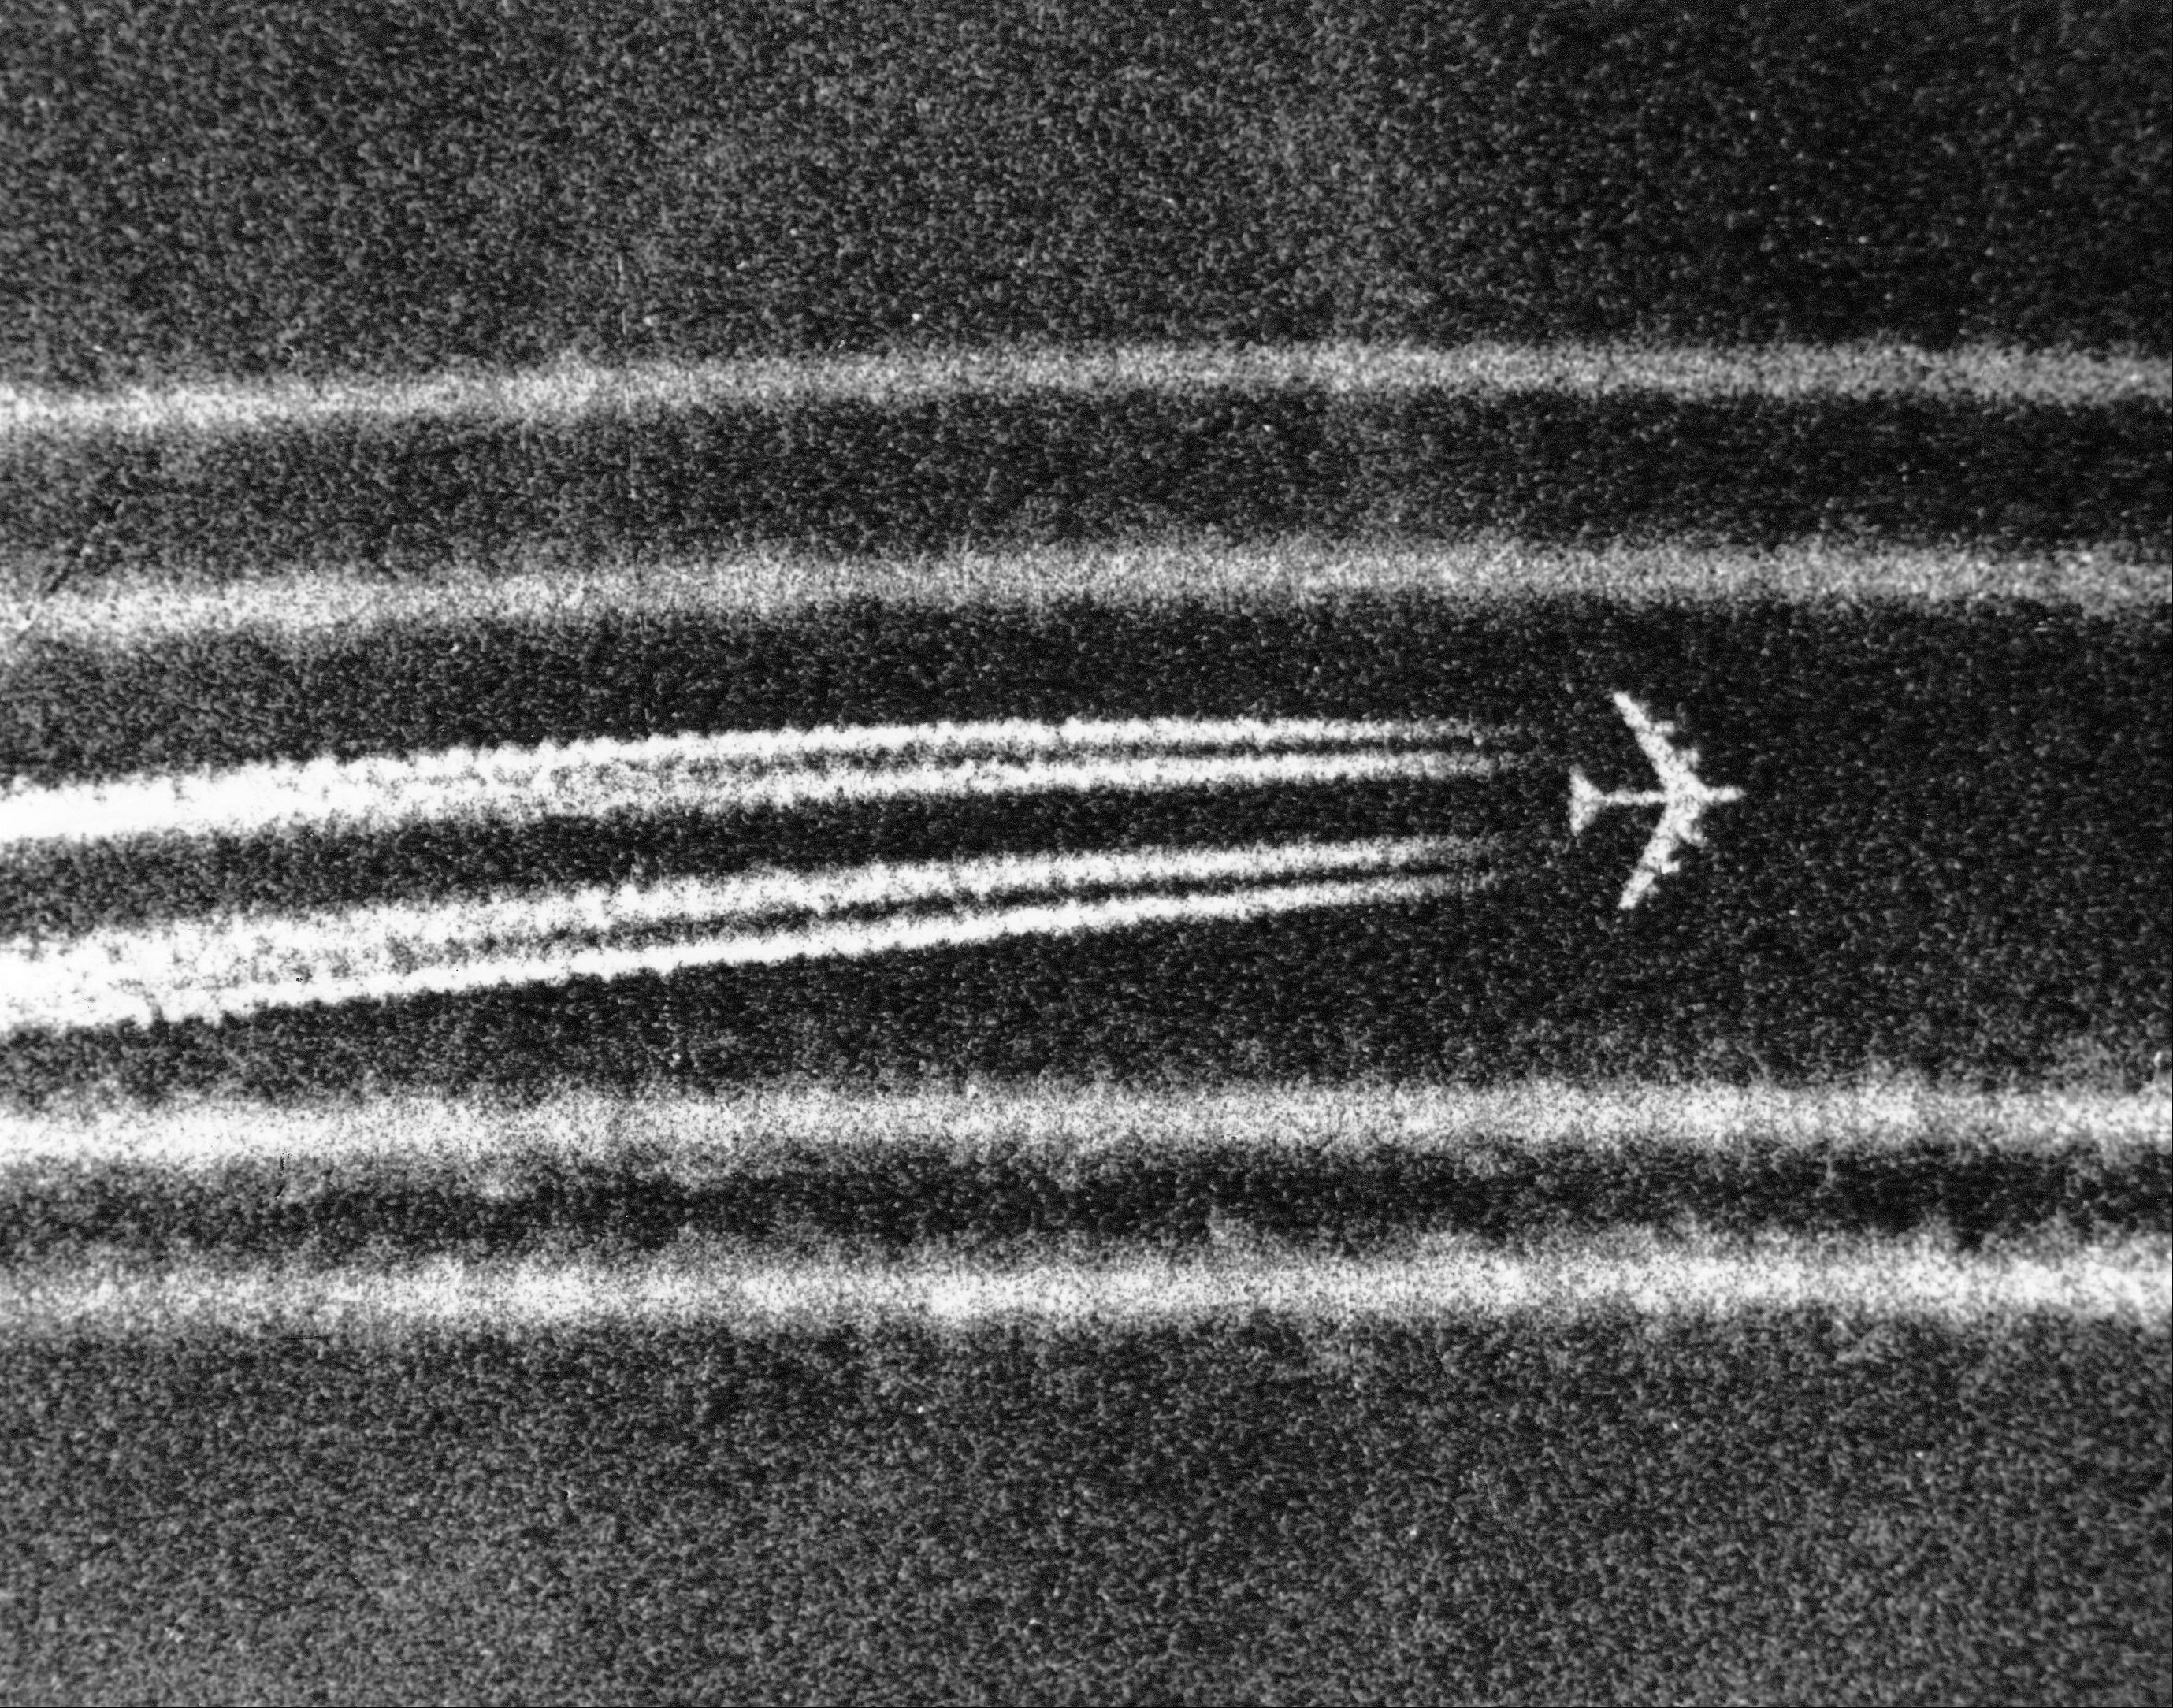 B52 high altitude bombers leave condensation trails while passing the town of Cai Lay in the Mekong Delta on Sept. 29, 1972, moments after unleashing bombs on a suspected enemy positions.